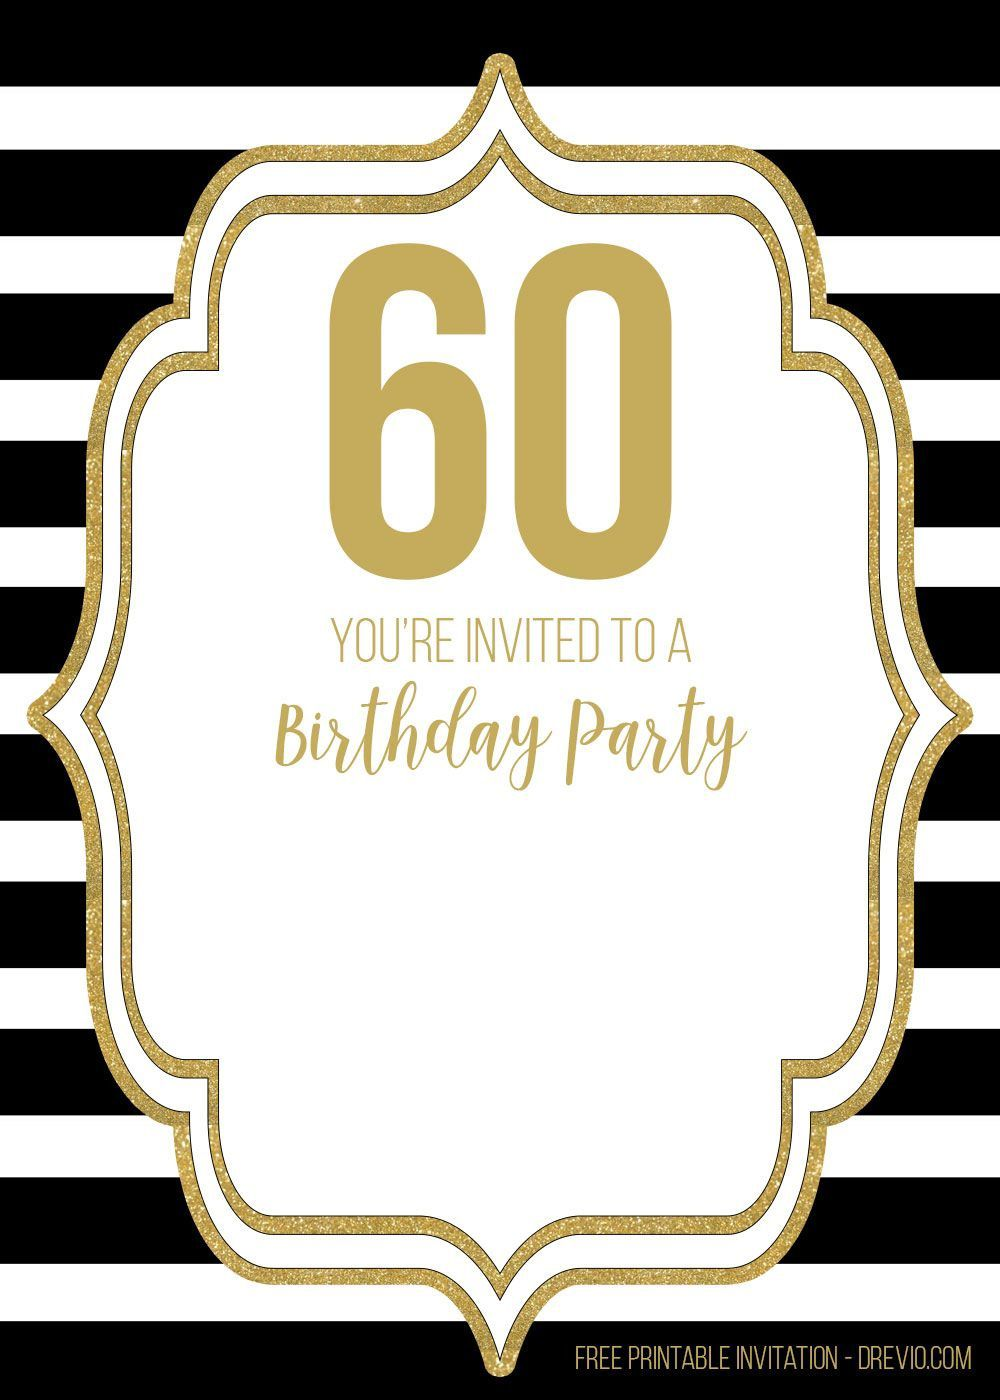 002 Fantastic Free 60th Birthday Invitation Template Highest Clarity  Templates Surprise Download For Word PartyFull